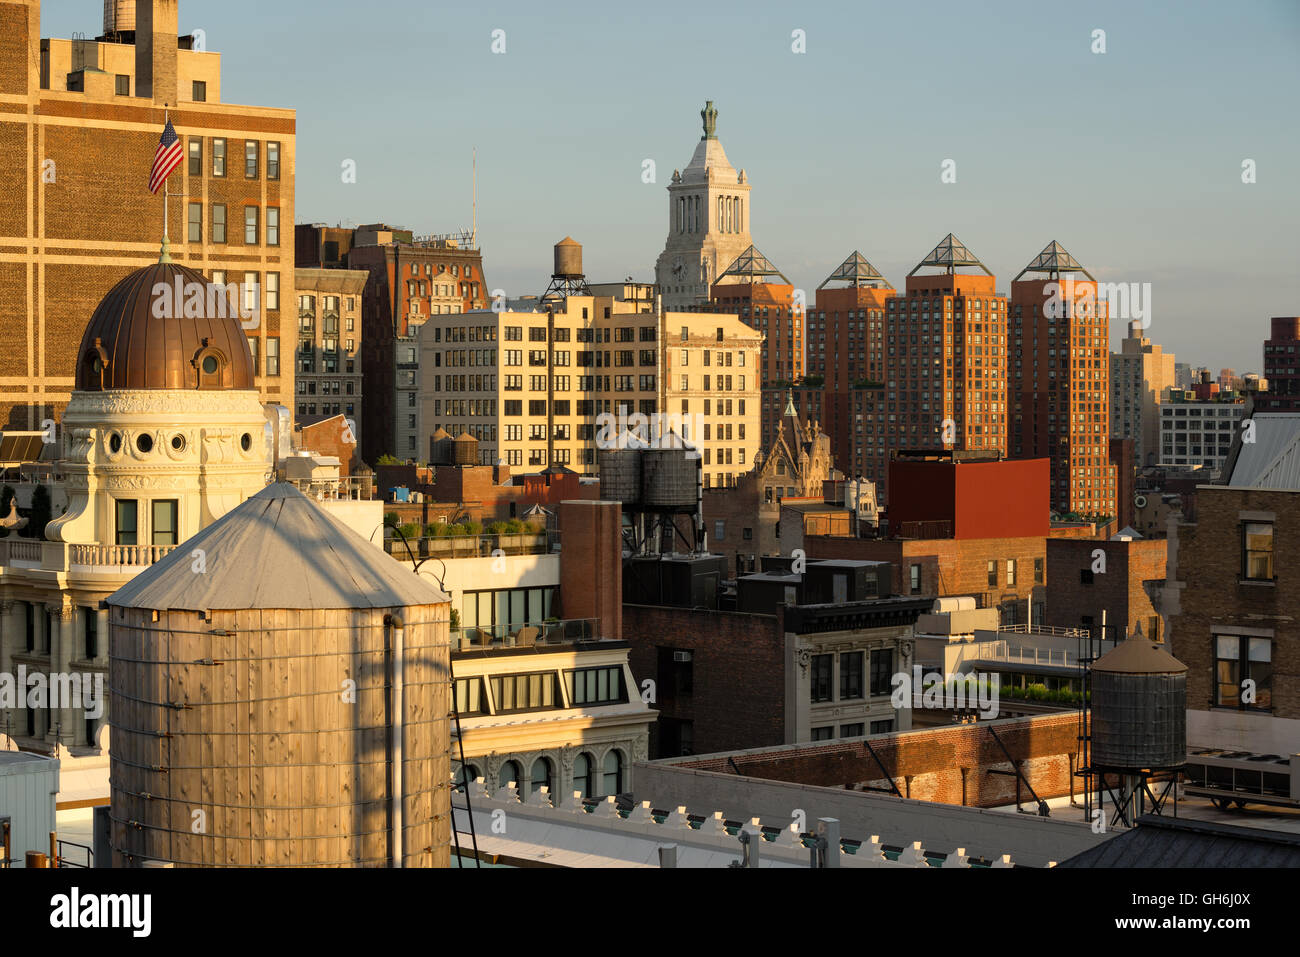 Sunset view of rooftops of the Flatiron District with water towers and penthouses. Manhattan, New York City - Stock Image